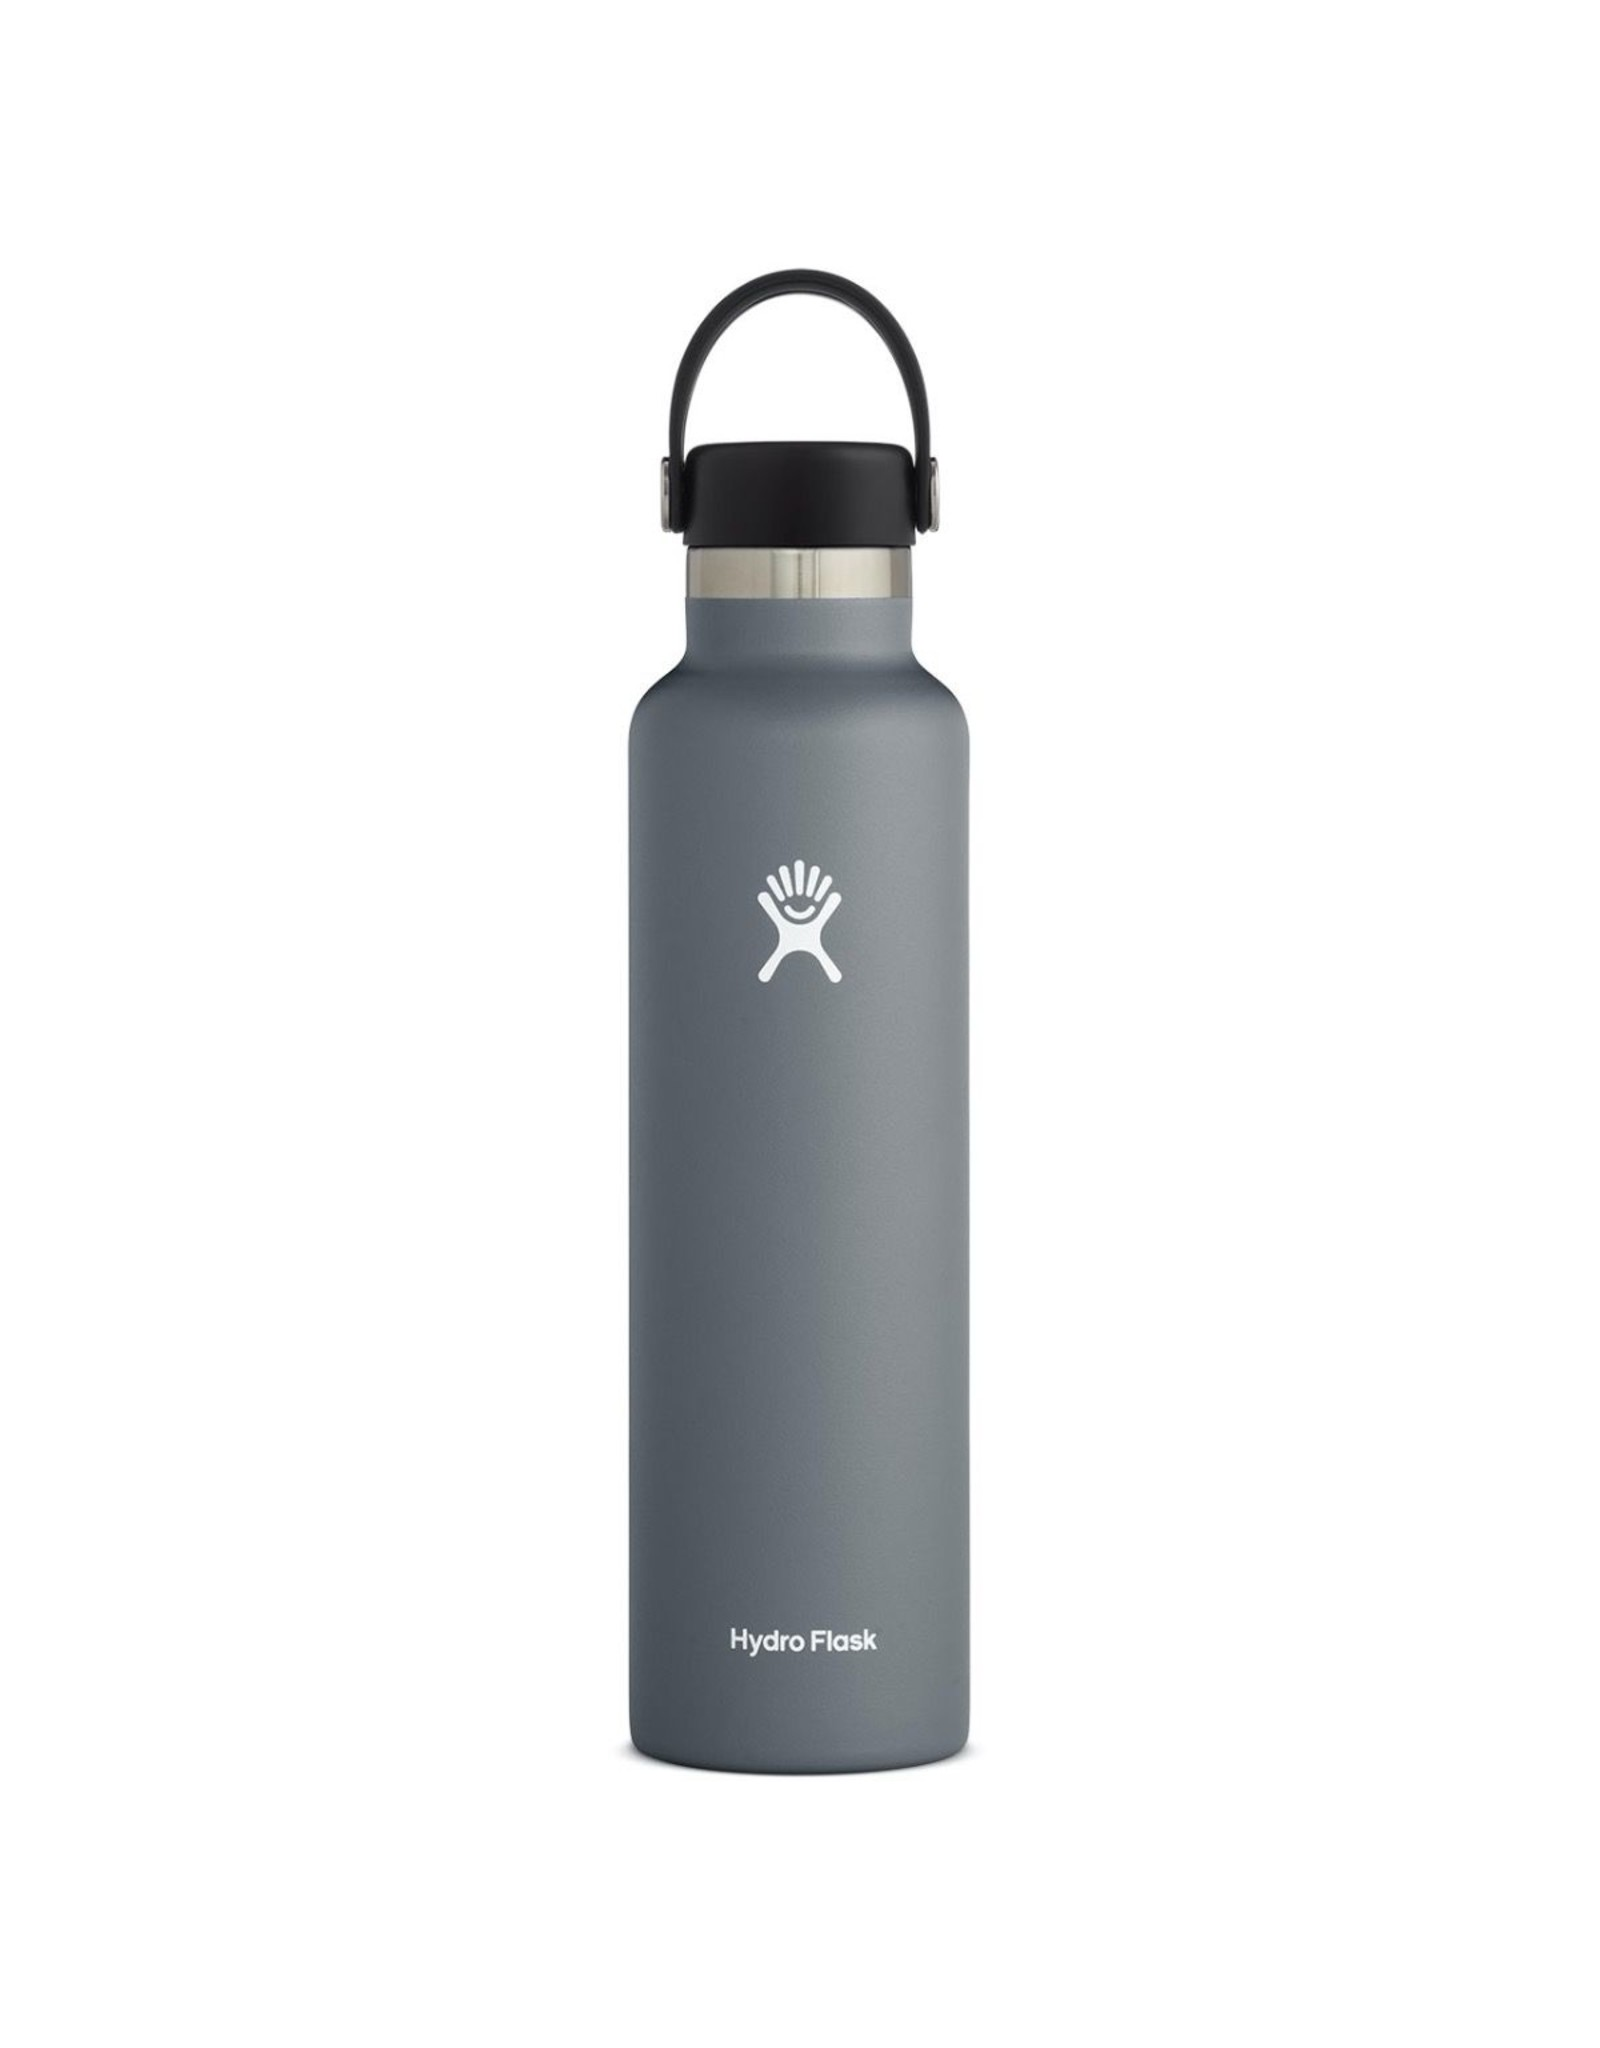 HYDRO FLASK 24 OZ STANDARD MOUTH INSULATED BOTTLE